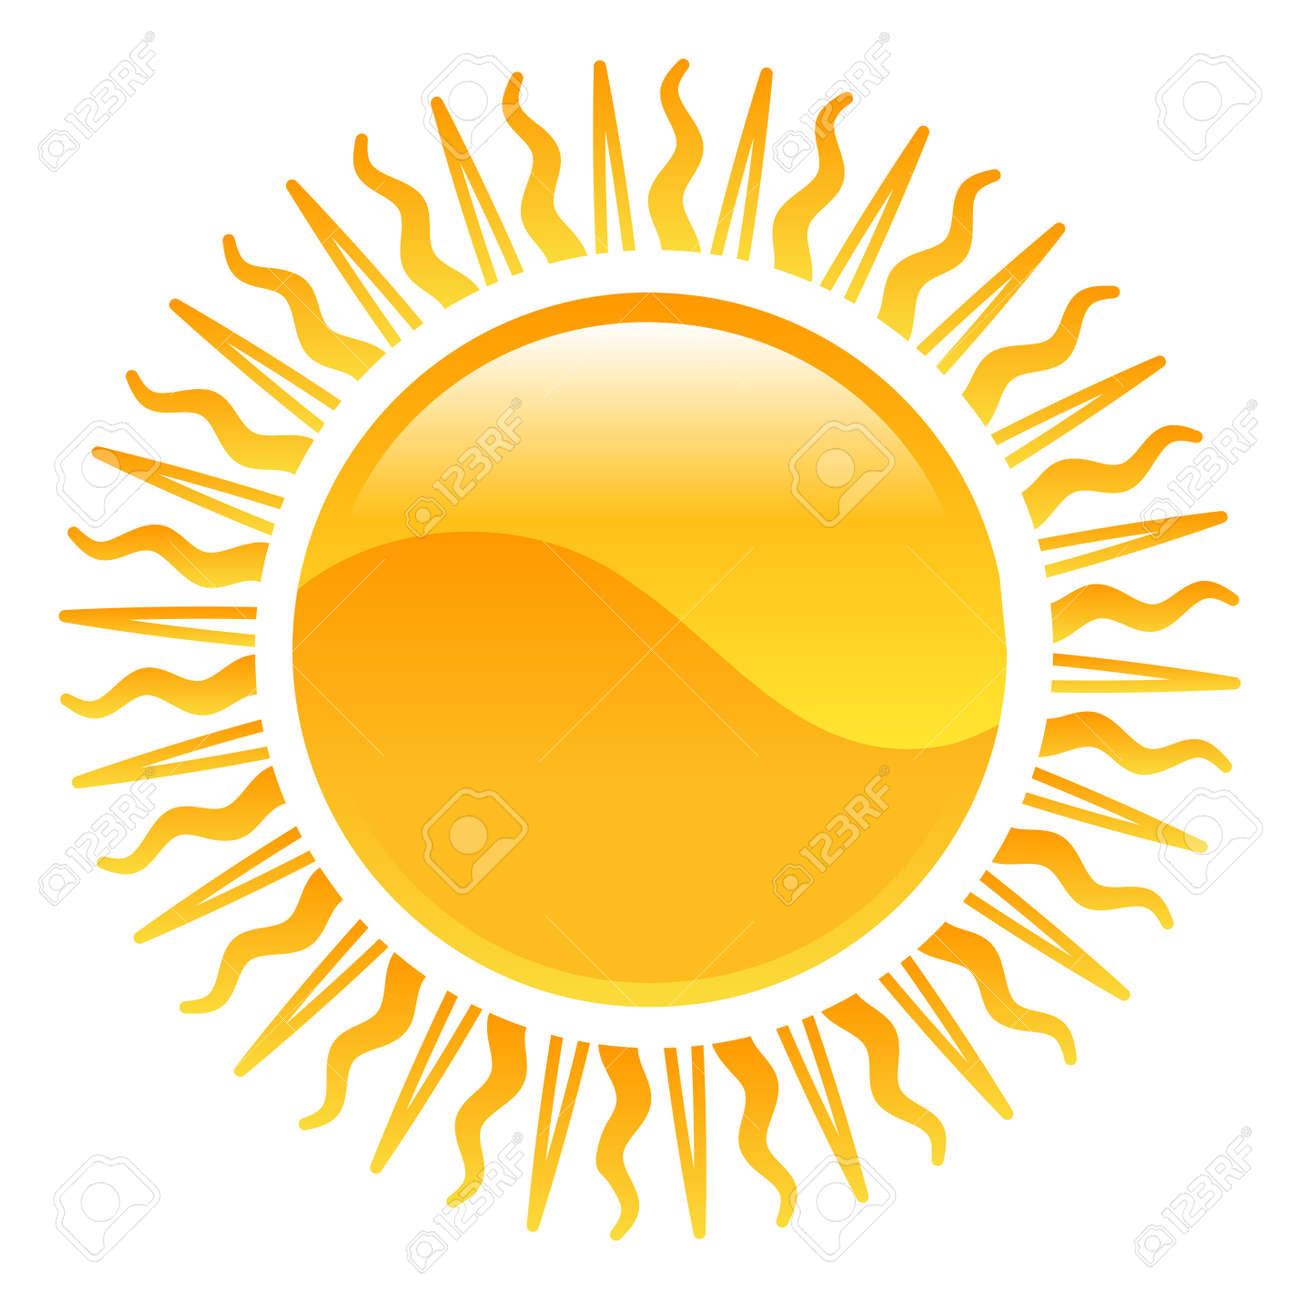 hight resolution of vector weather icon clipart sun illustration